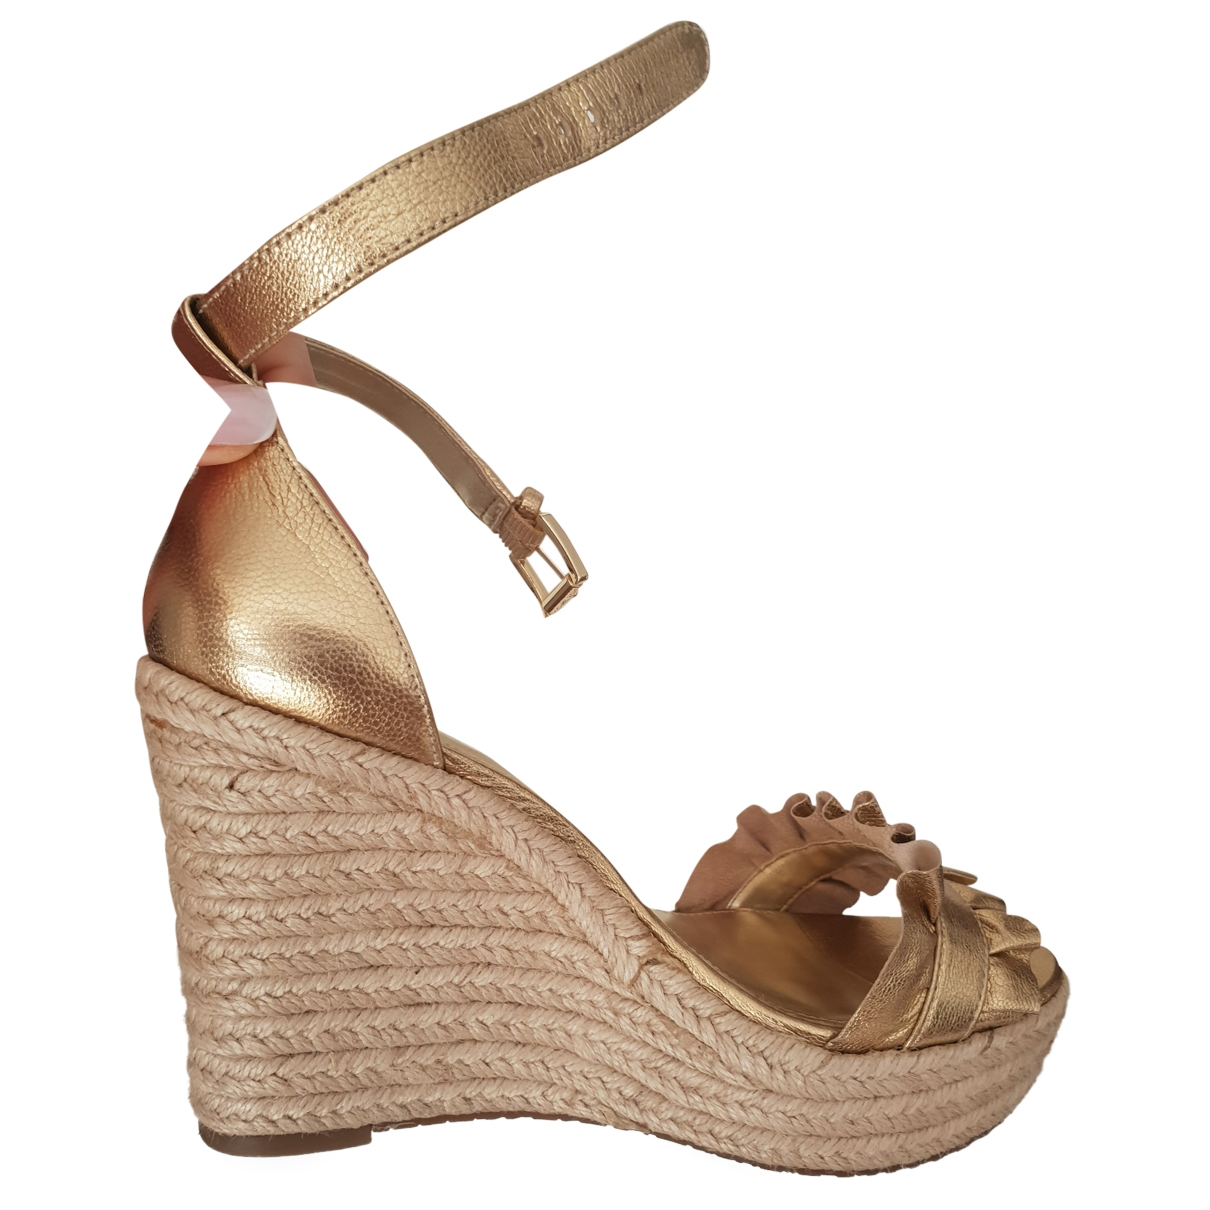 Michael Kors \N Gold Leather Espadrilles for Women 36 EU